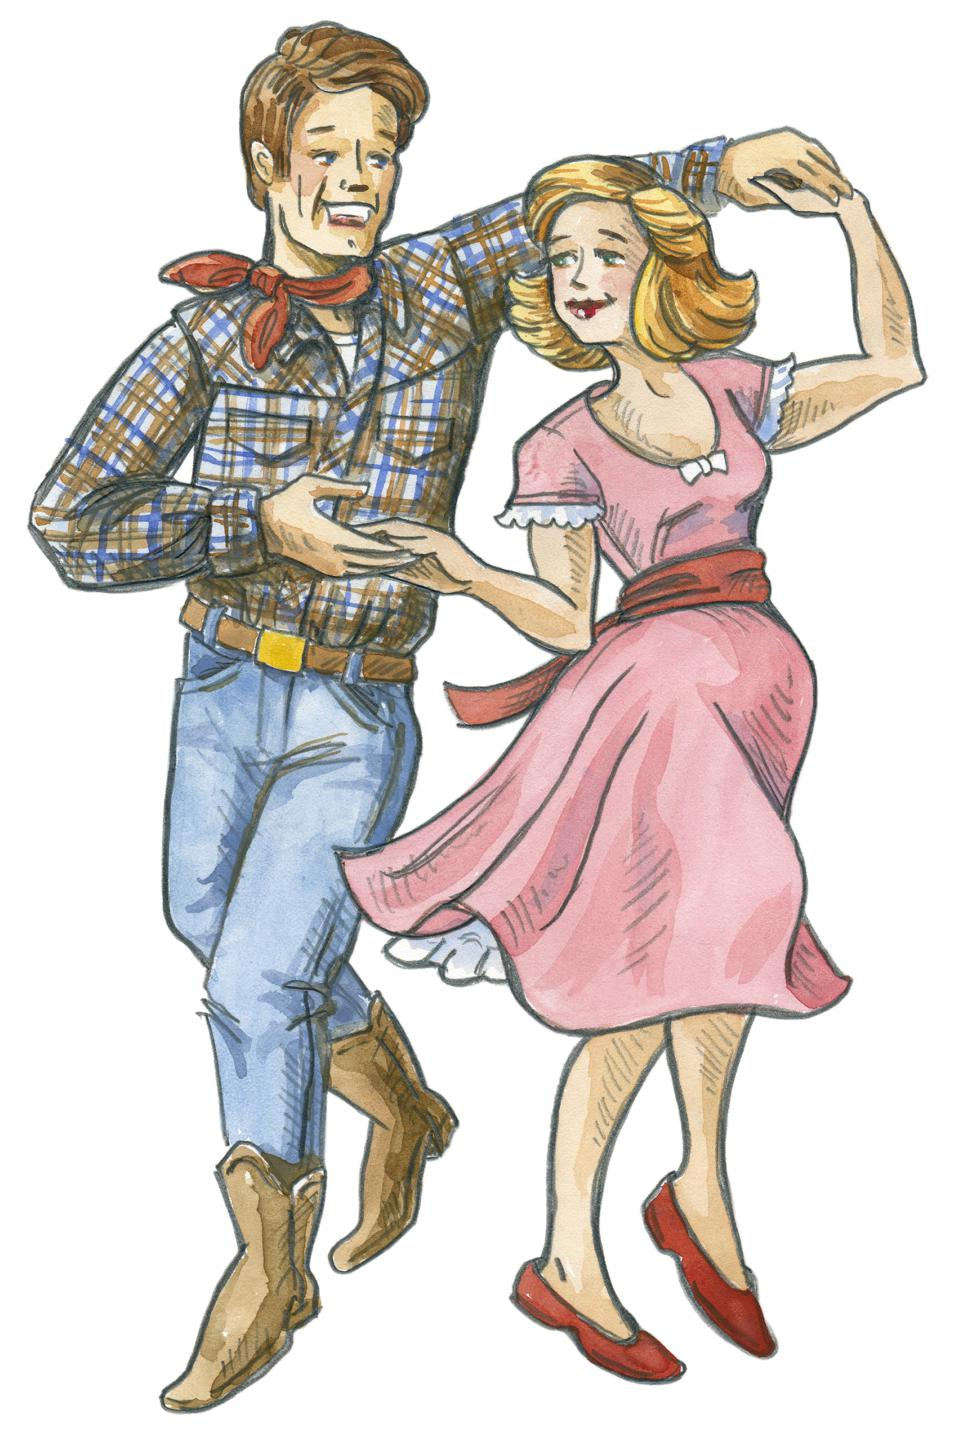 Retro-Style Illustration of Man and Woman Square Dancing